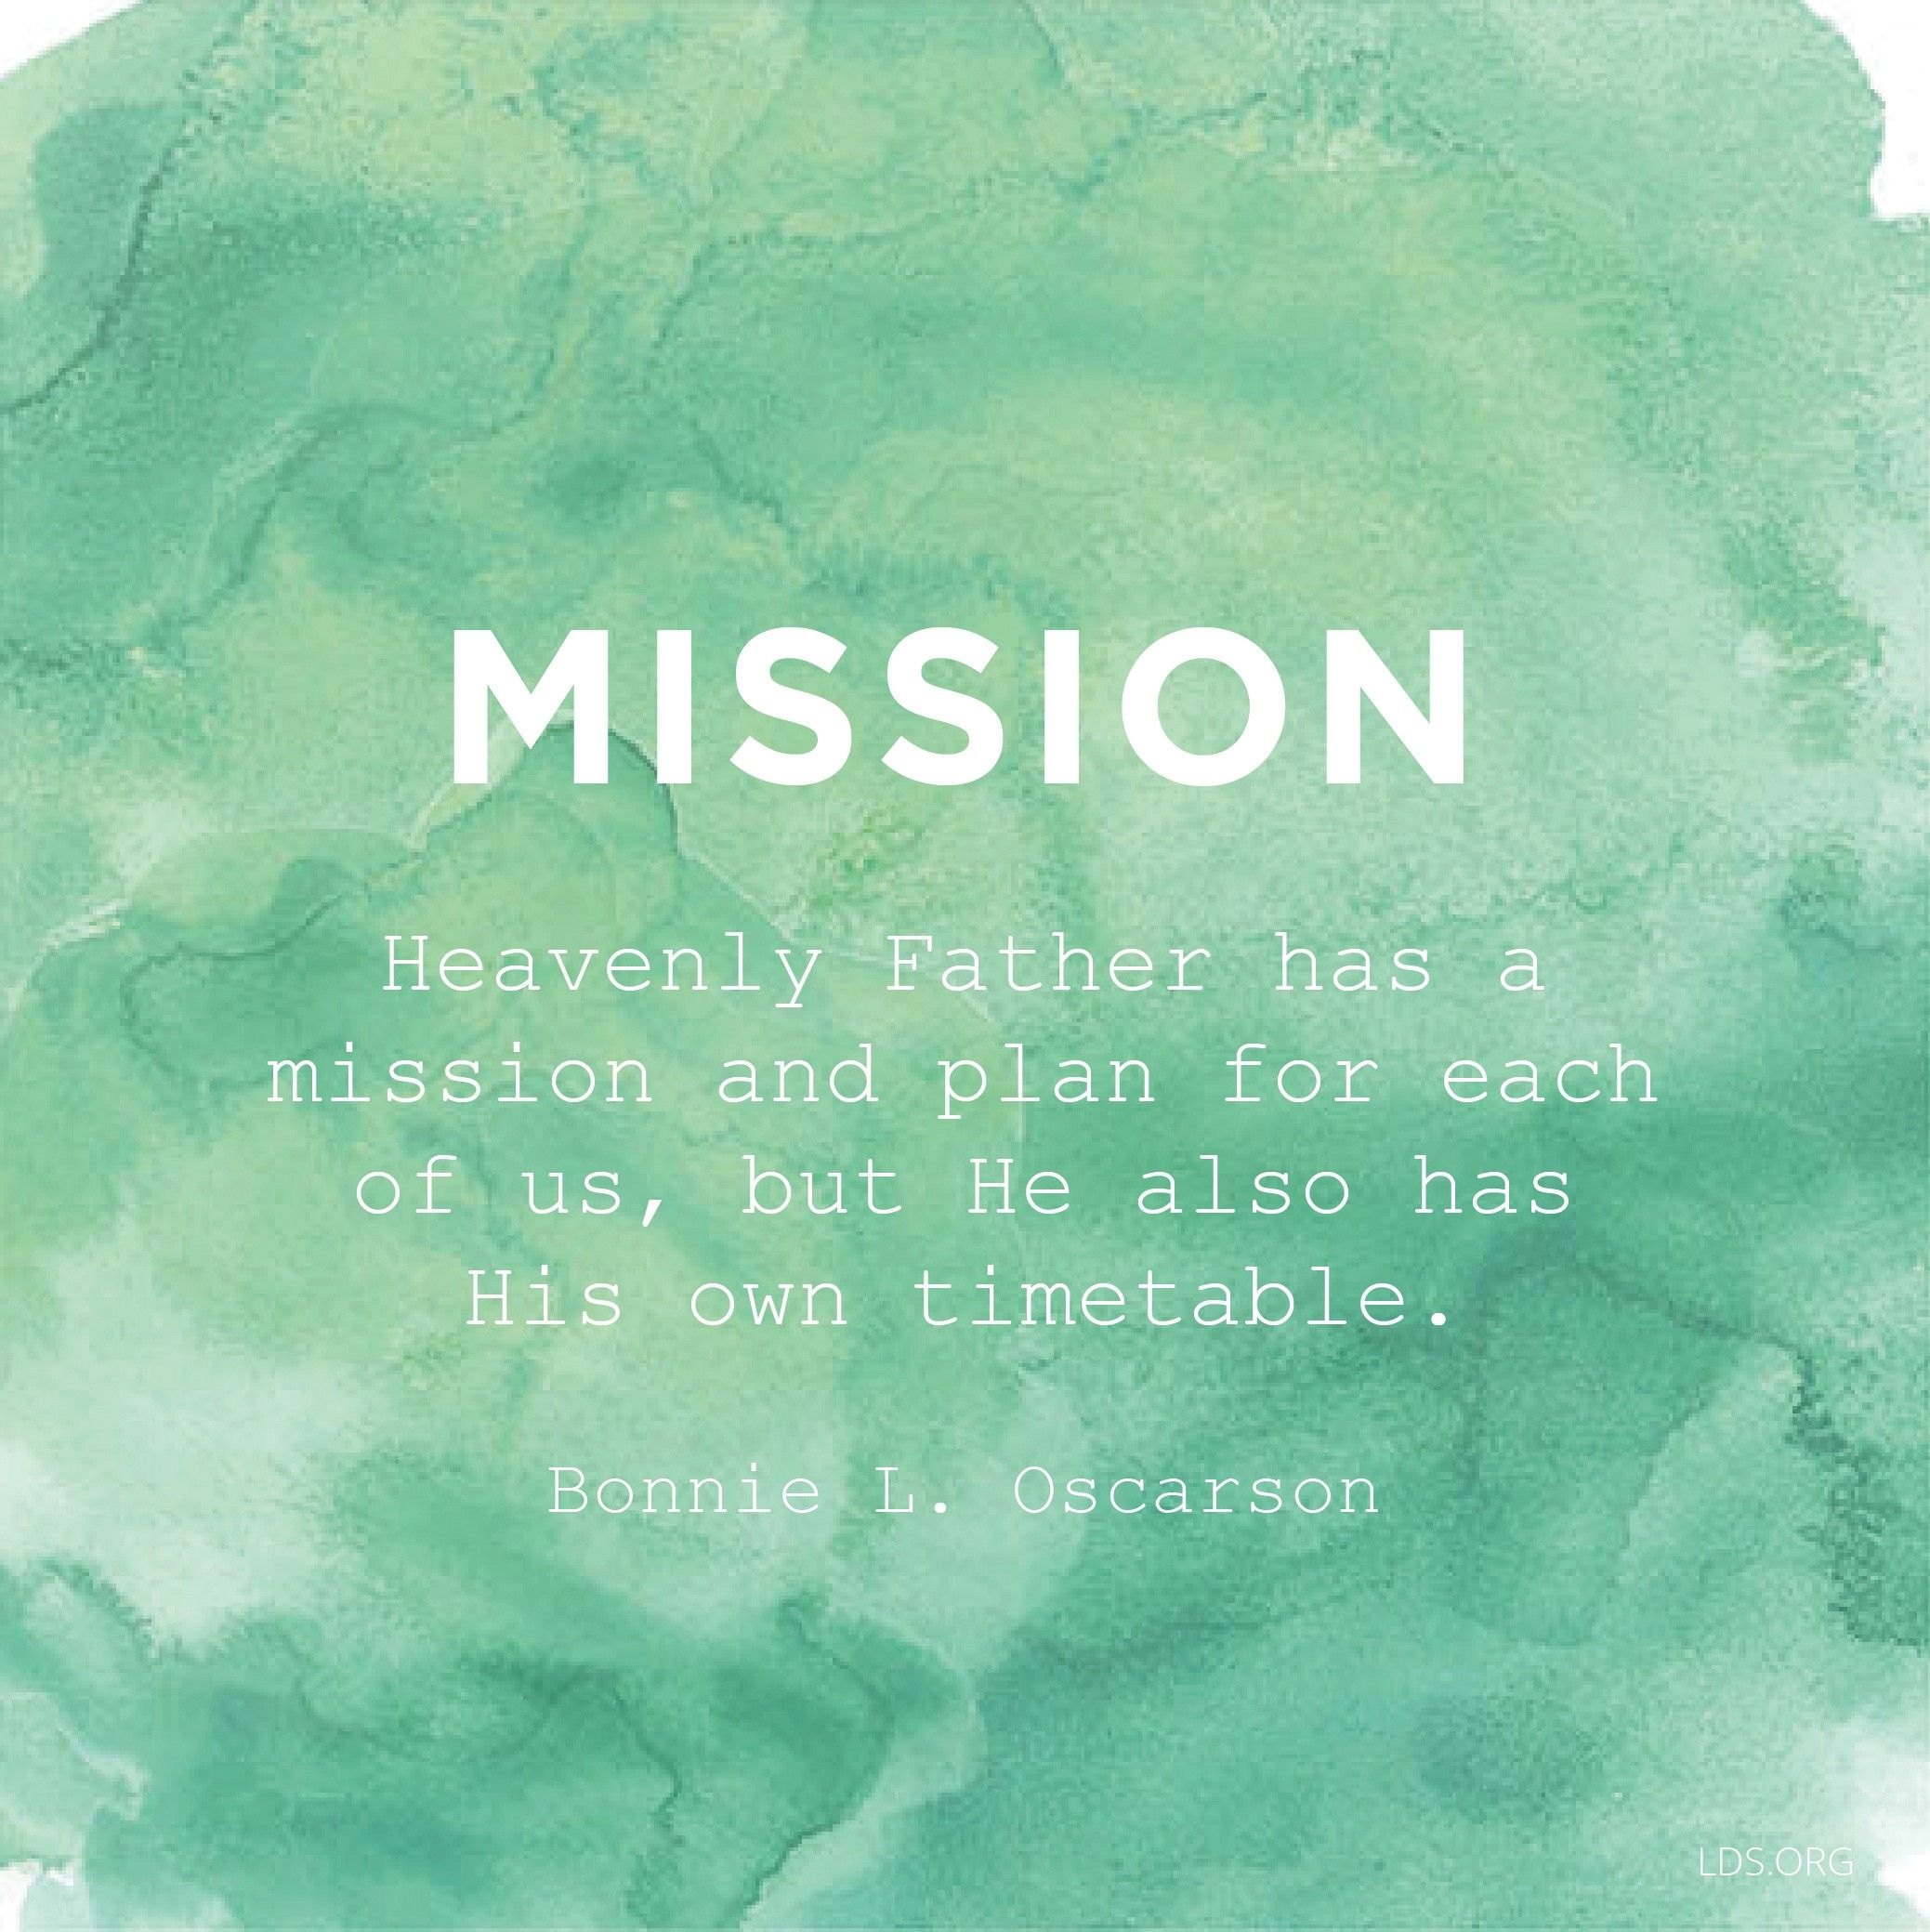 """""""Heavenly Father has a mission and plan for each of us, but He also has His own timetable.""""—Sister Bonnie L. Oscarson, """"Defenders of the Family Proclamation"""""""